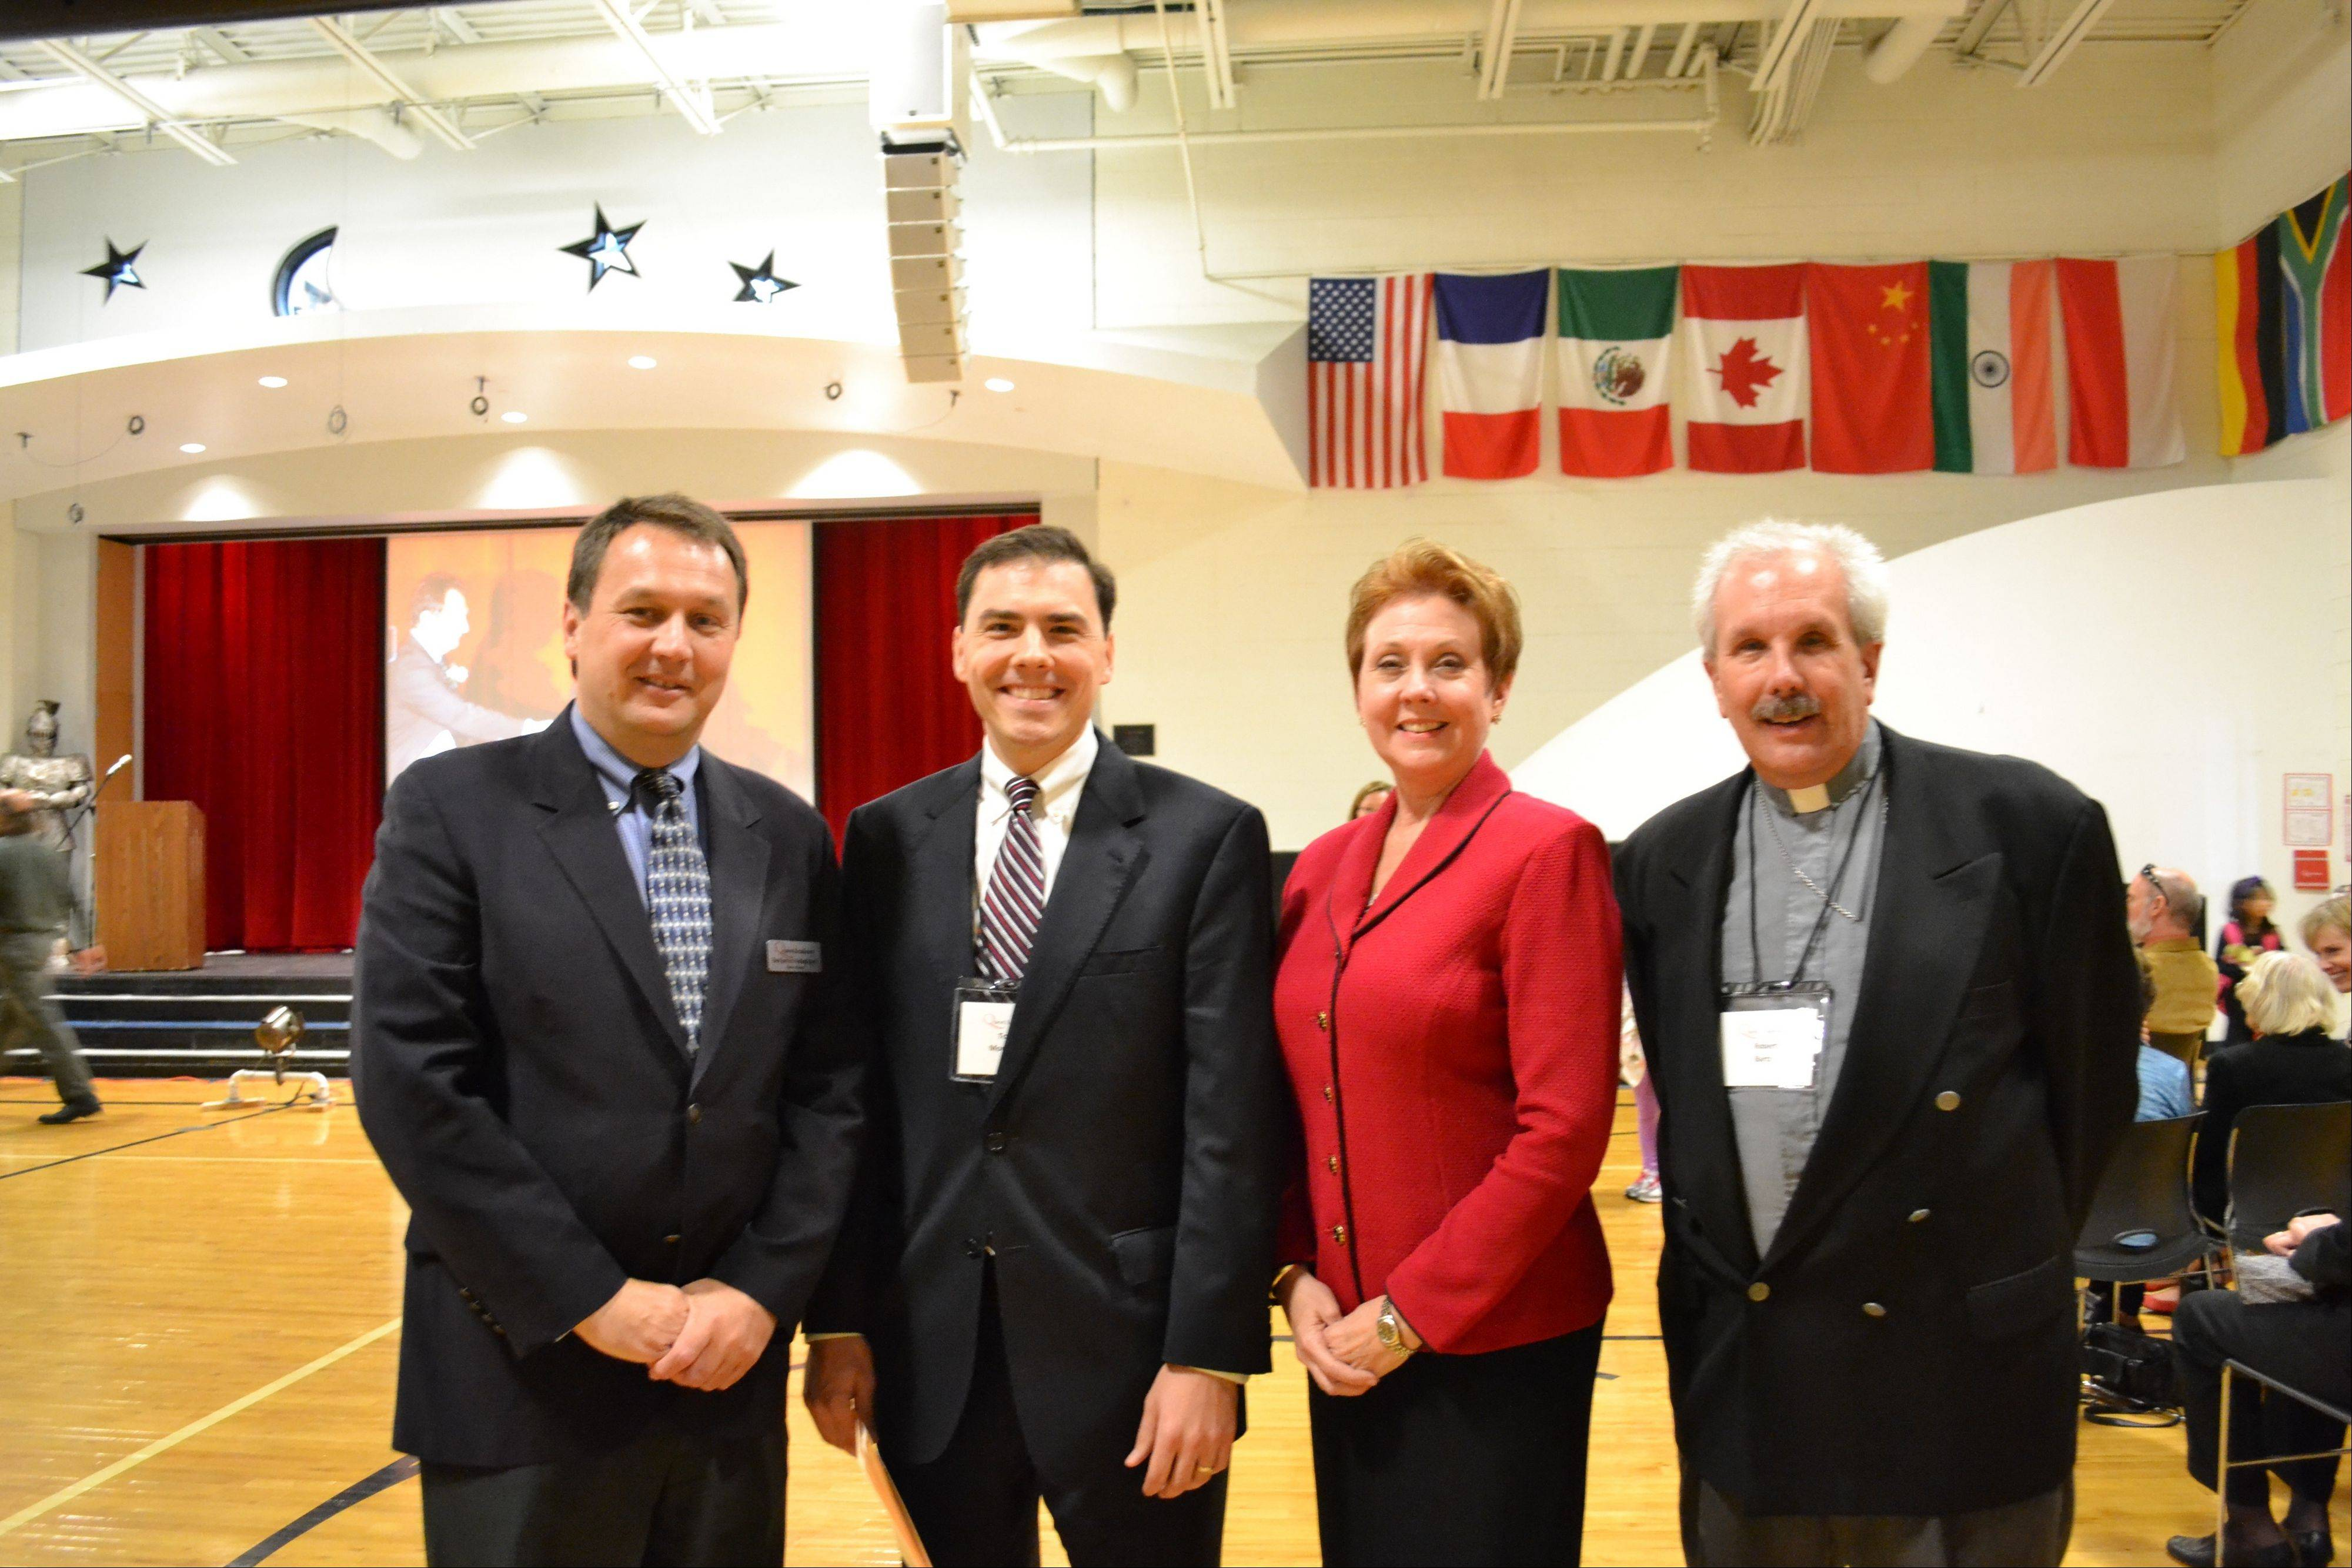 Pictured, from left, are: Ben Hebebrand, head of School, Quest Academy; Tom Morrison, Illinois state representative, 54th District; Susan Paschal Bartz, daughter of Quest Academy founder Helene Bartz; and Pastor Robert Bartz, son of Quest Academy founder Helene Bartz at the character education assembly at Quest Academy.